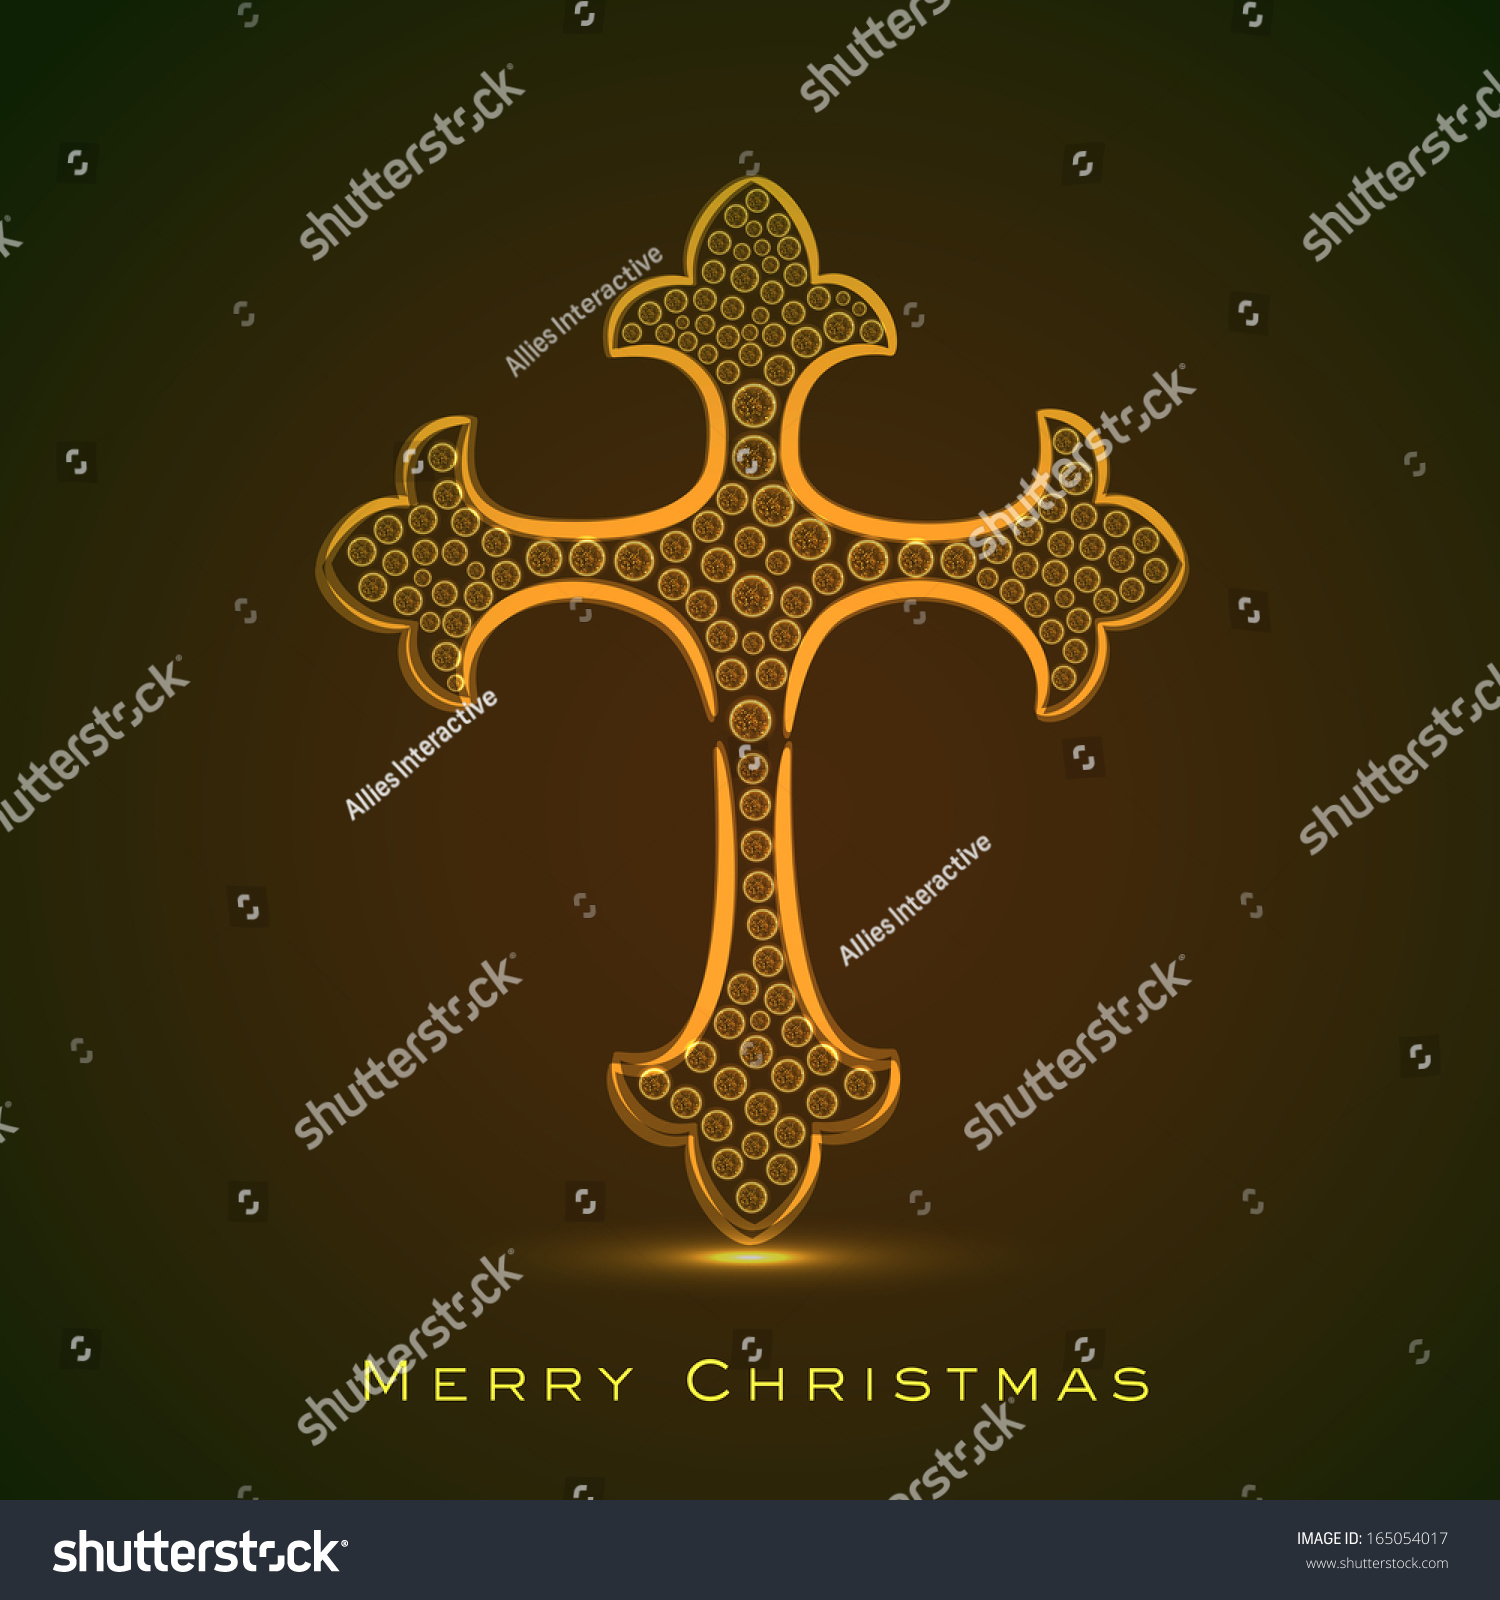 Merry christmas happy new year 2014 stock vector 165054017 merry christmas and happy new year 2014 celebration concept with golden christian cross on brown background voltagebd Image collections